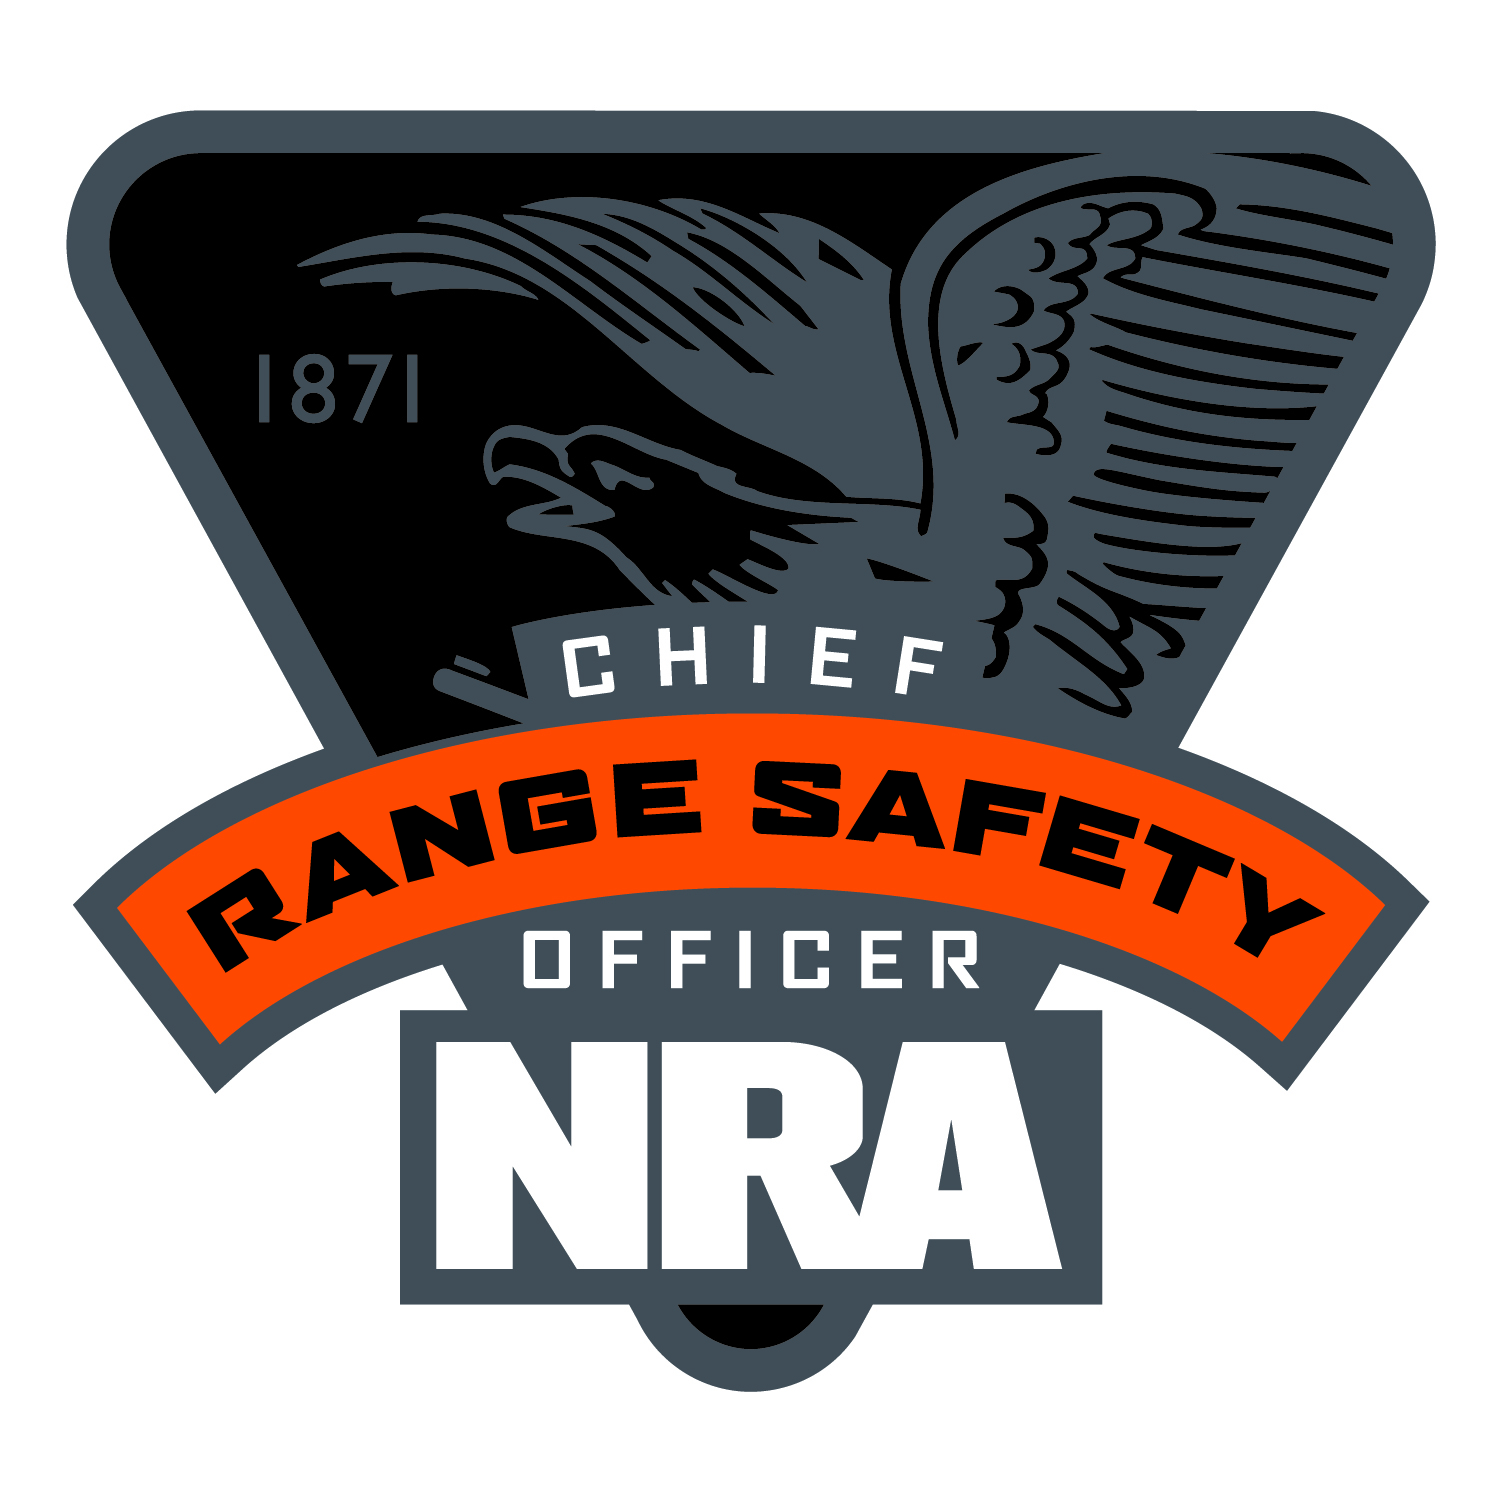 NRA Chief Range Safety Officer -